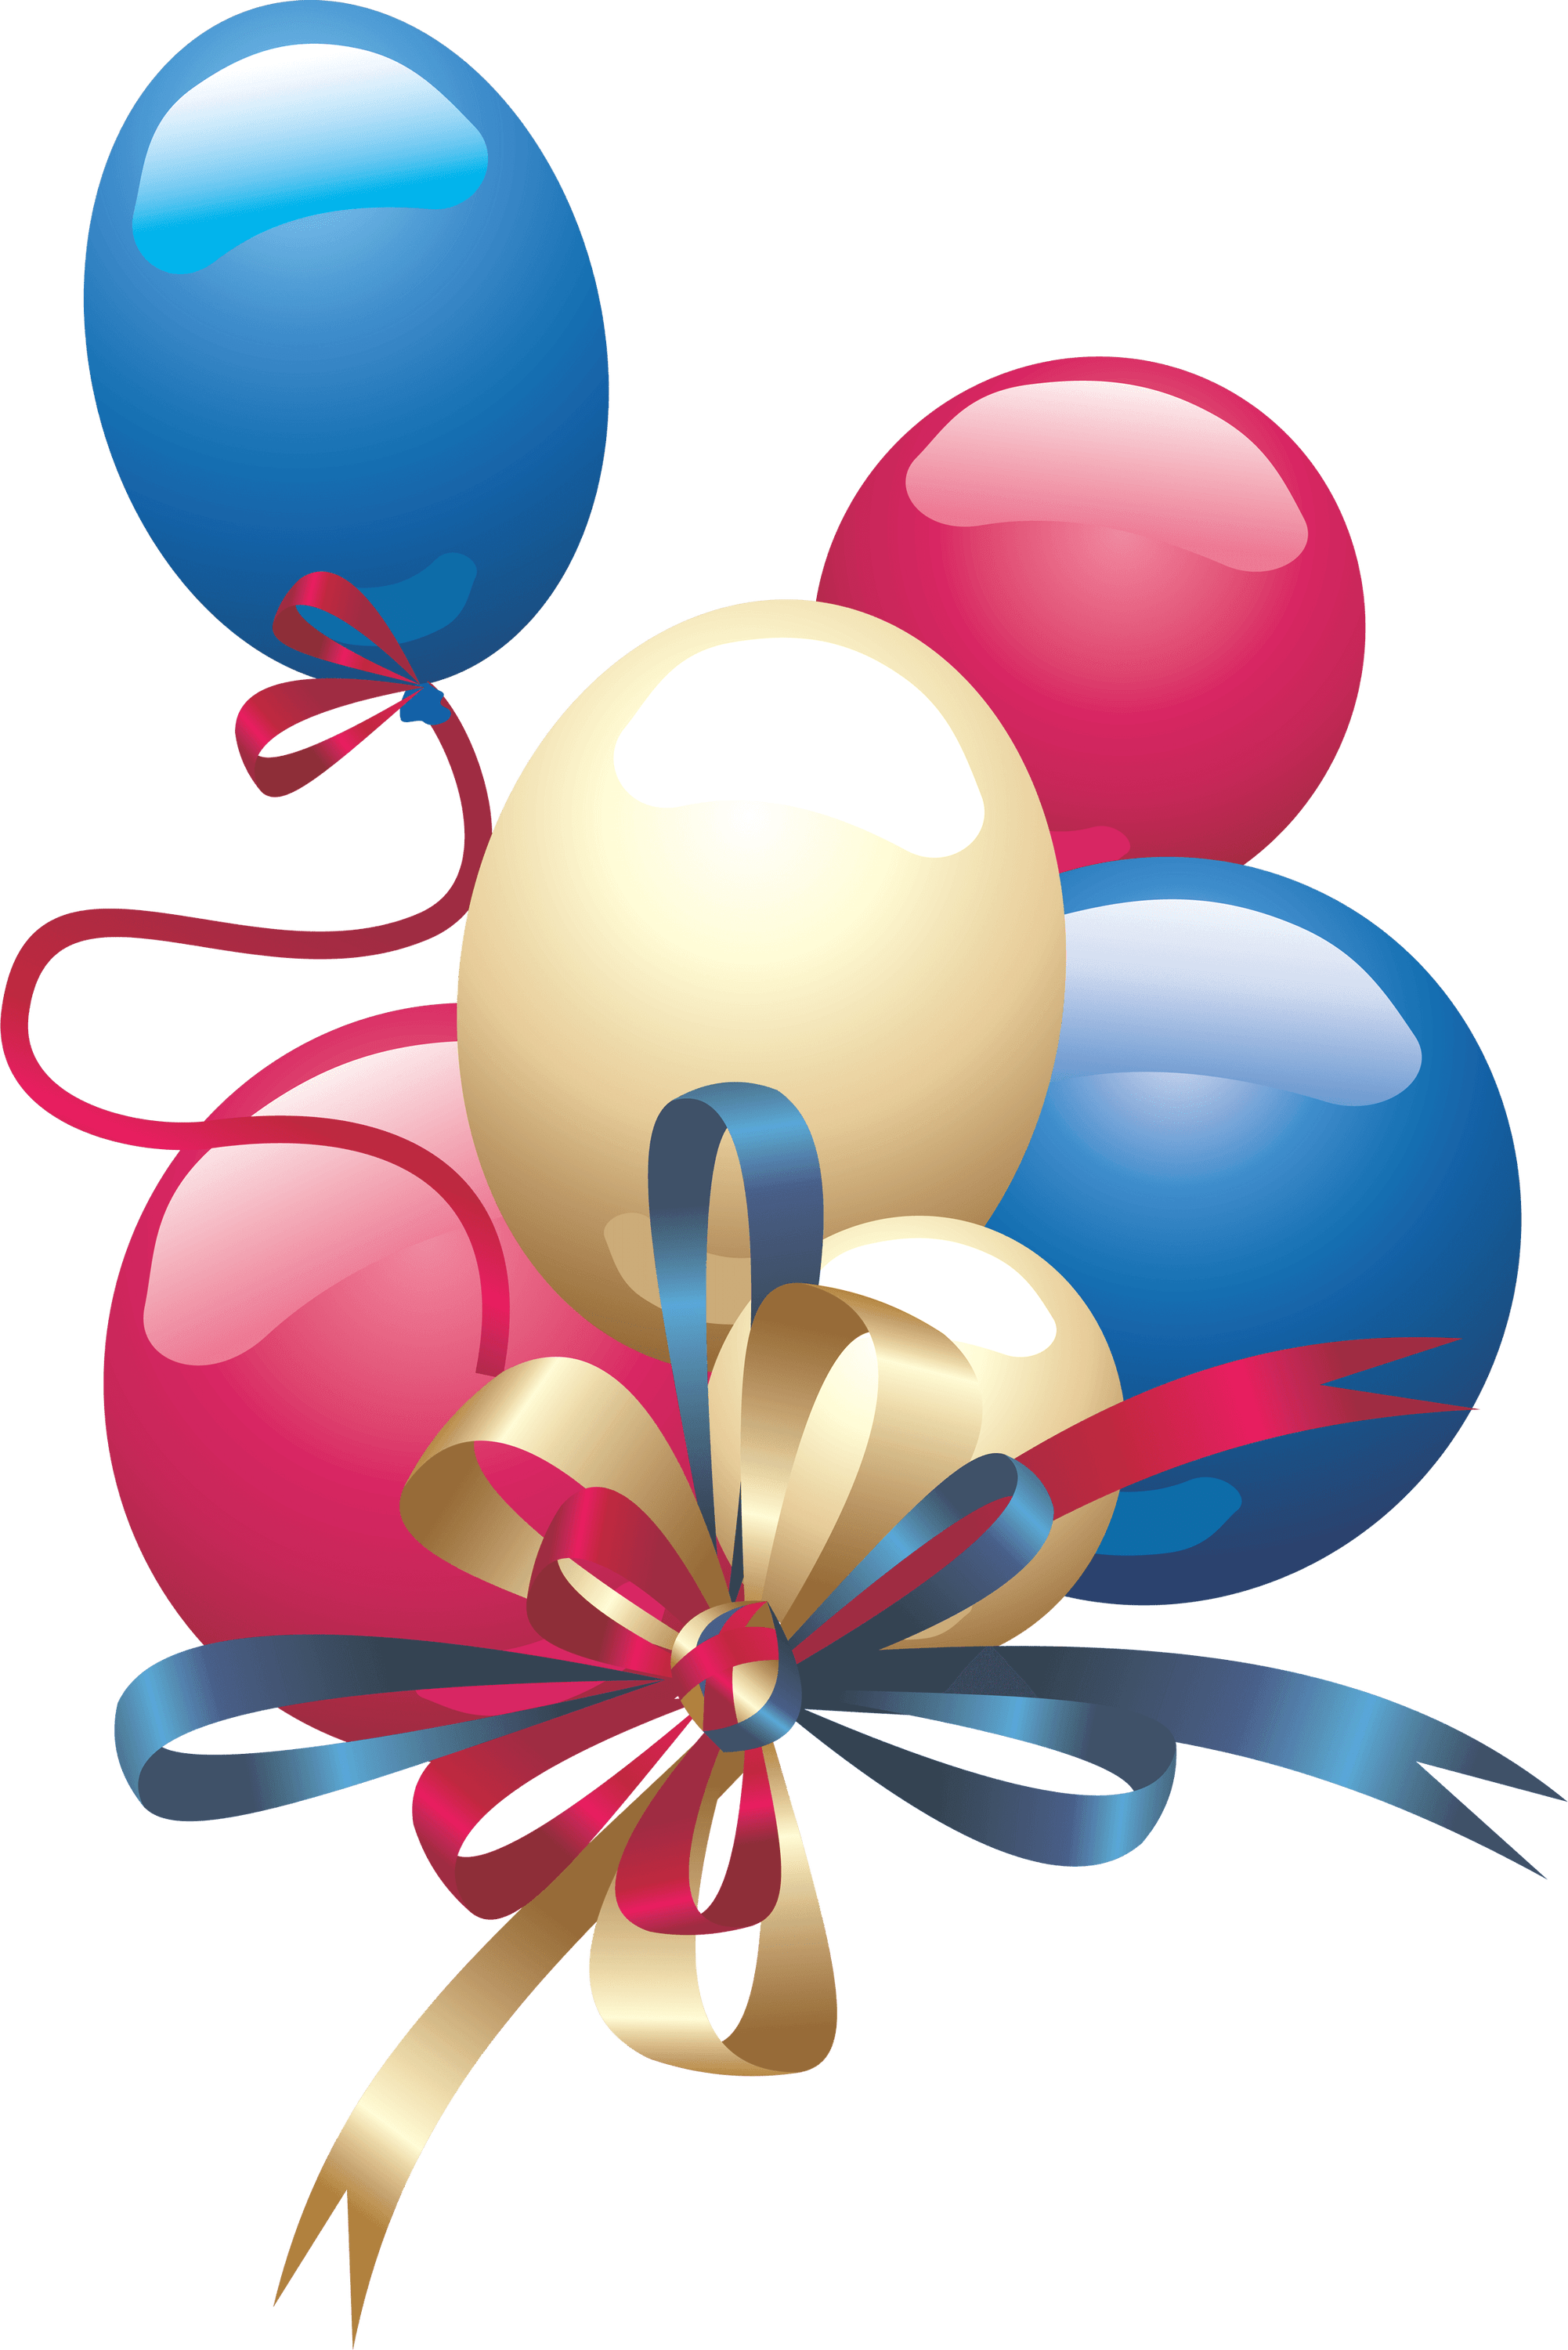 Party ballon png. Balloon transparent stickpng objects